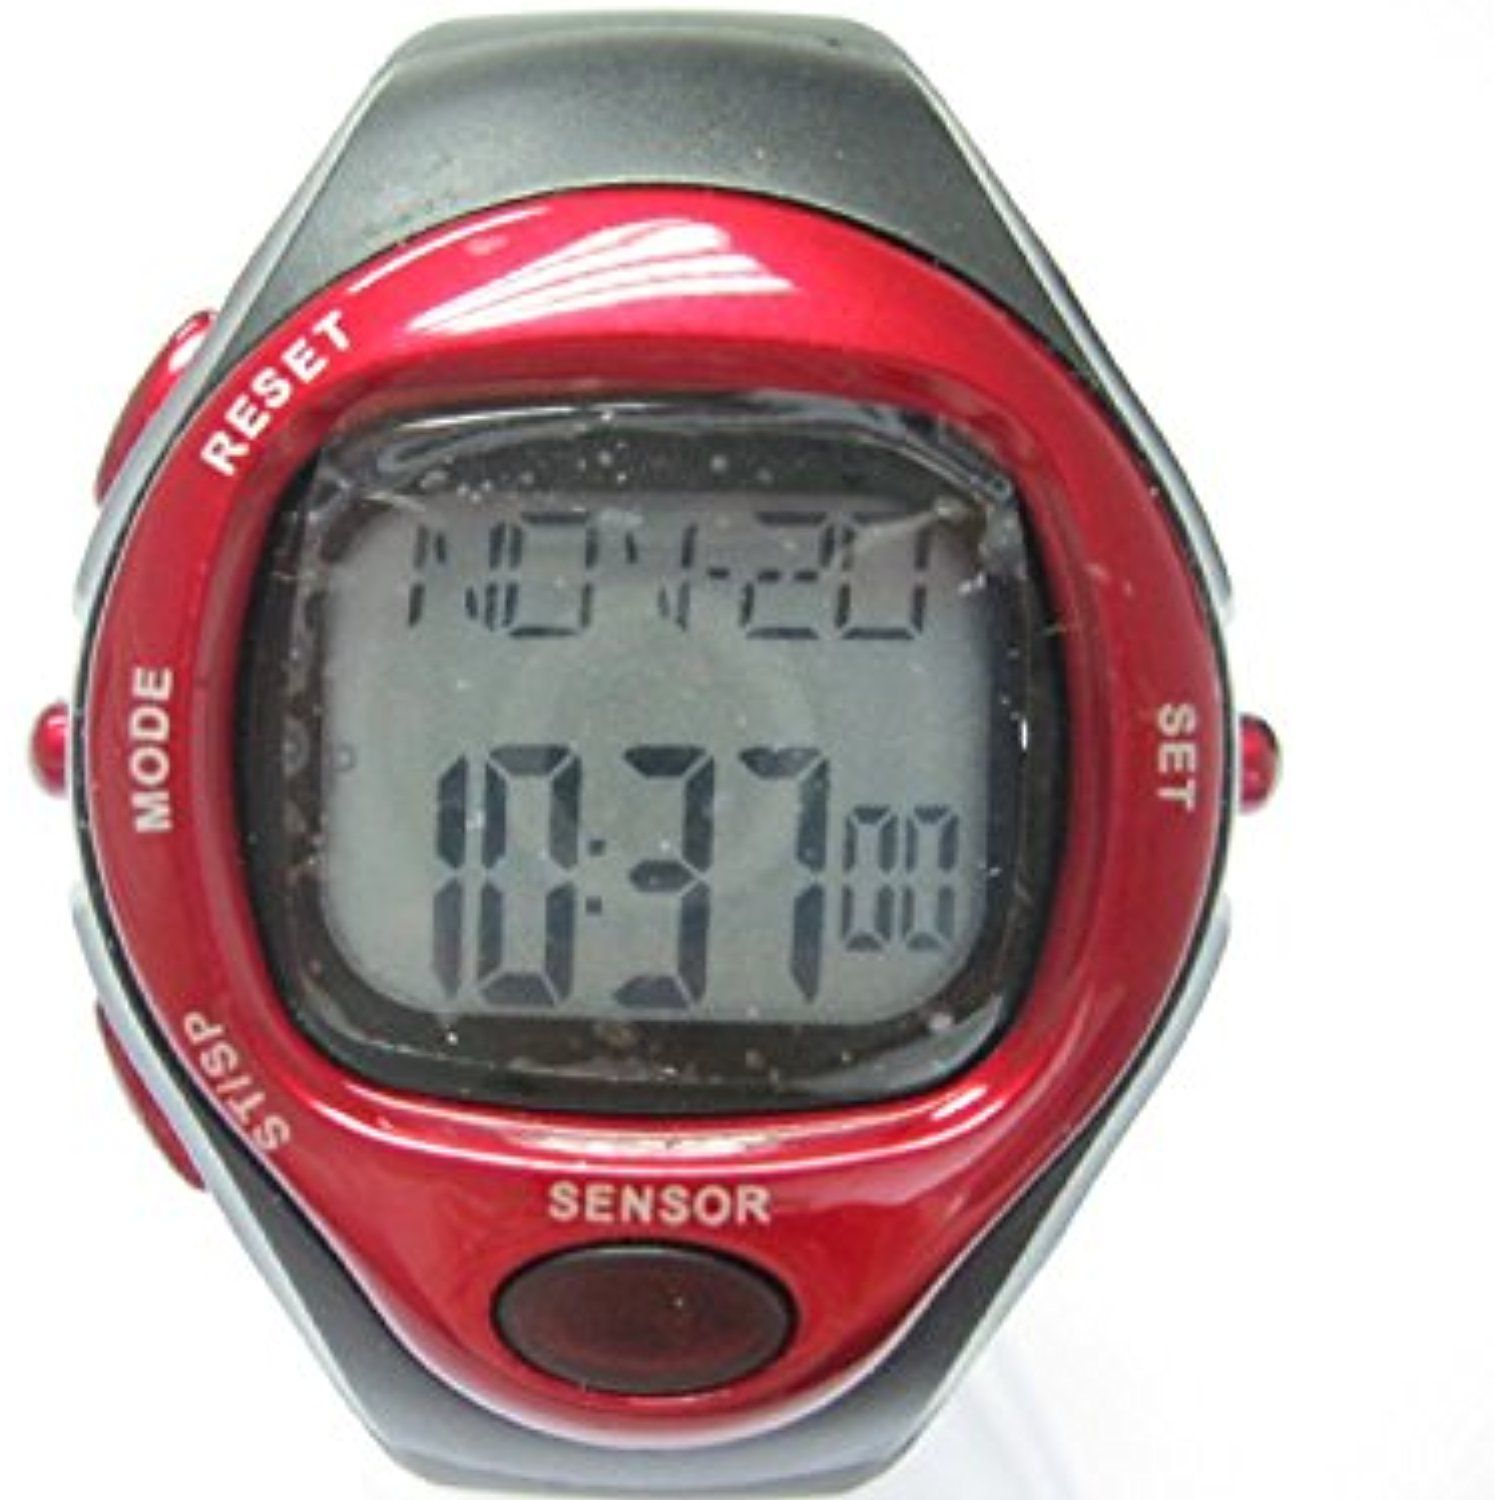 Heart Rate Monitor Watch Red Color – for Men